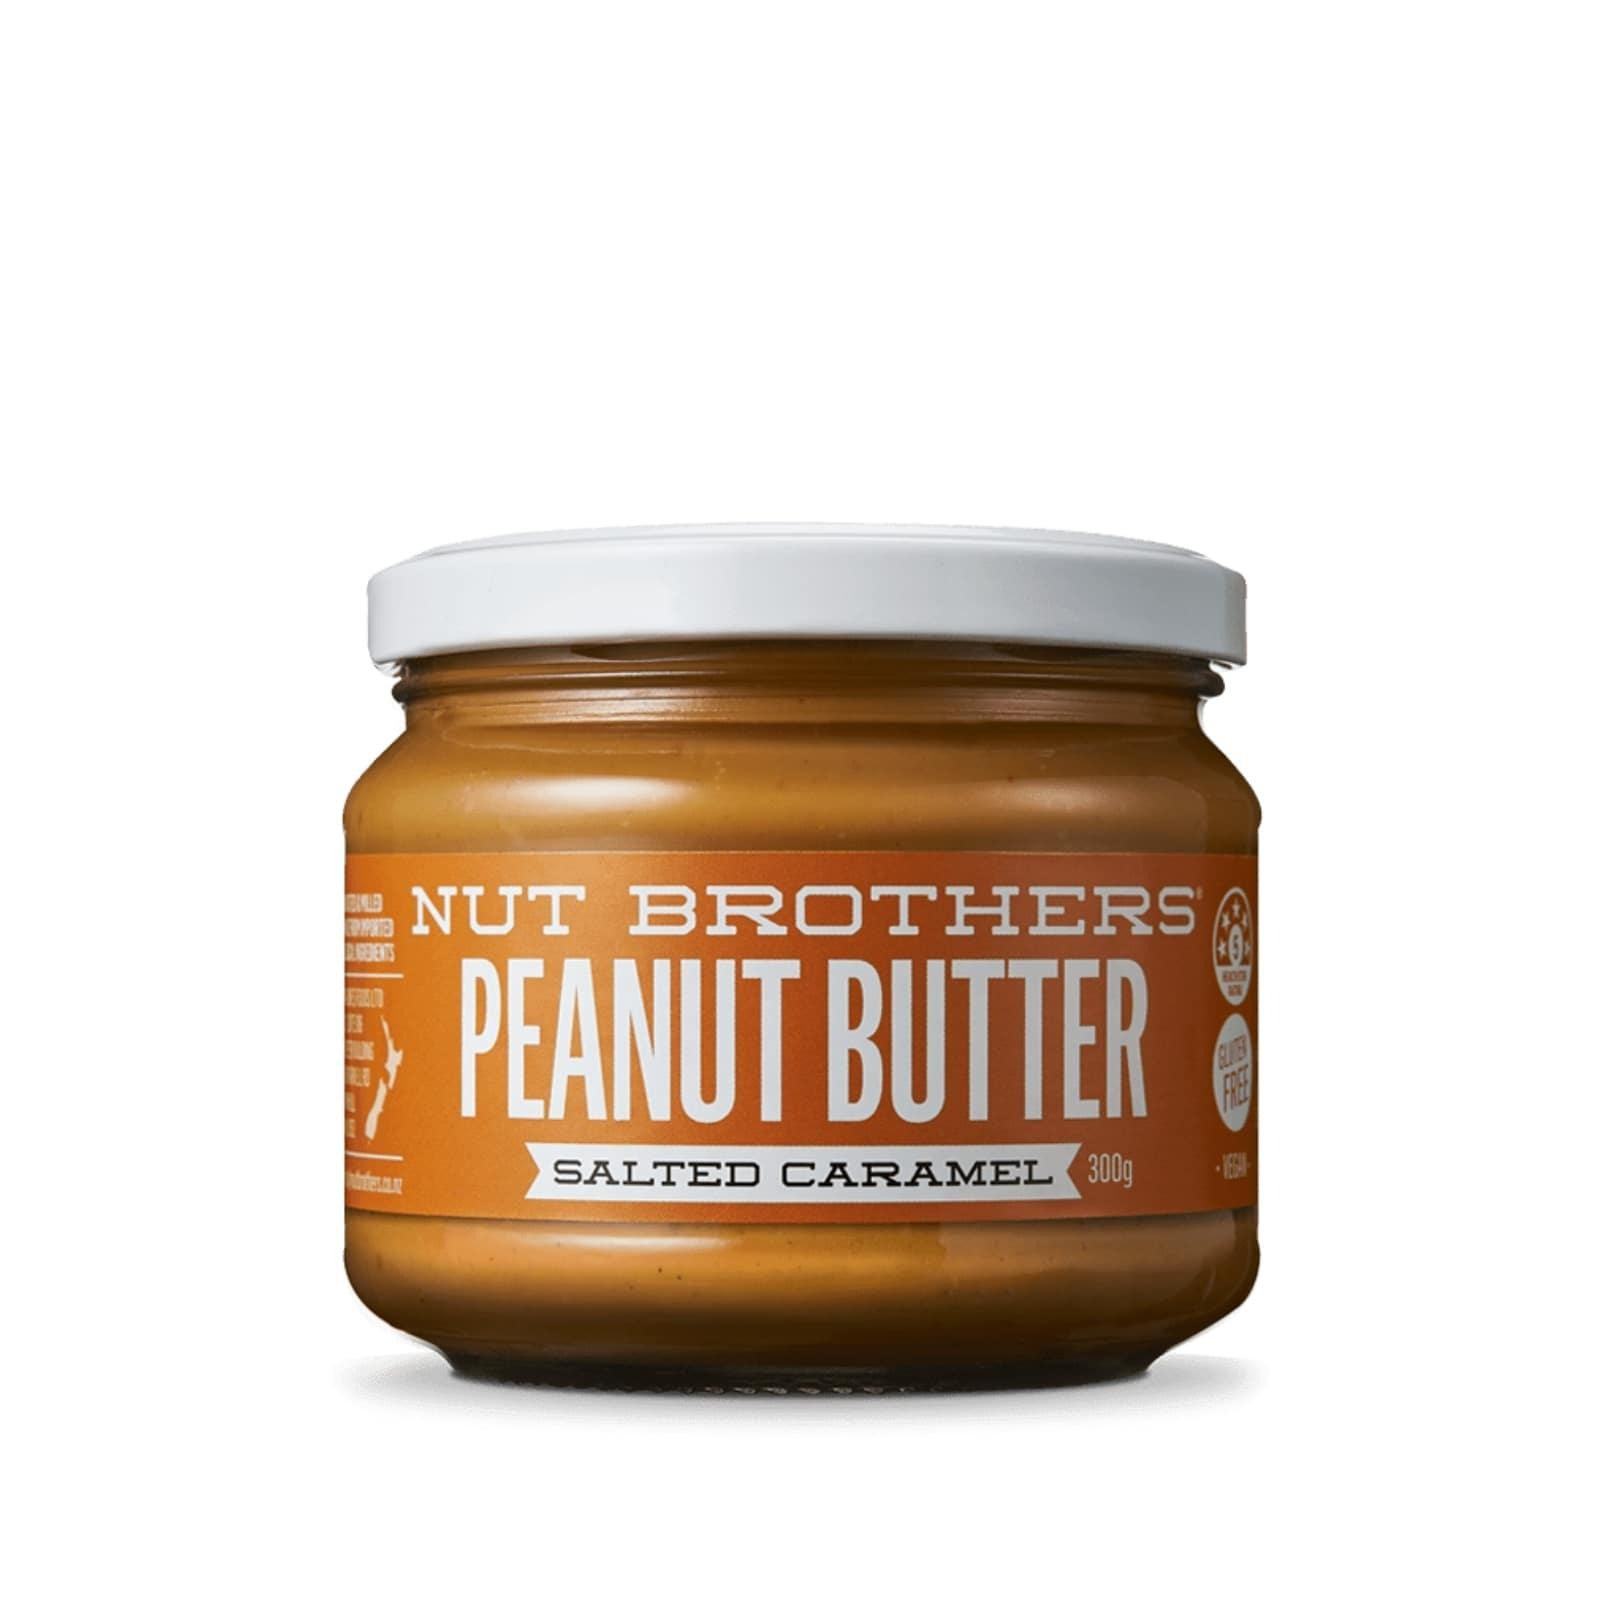 NUT BROTHERS Peanut Butter Salted Caramel